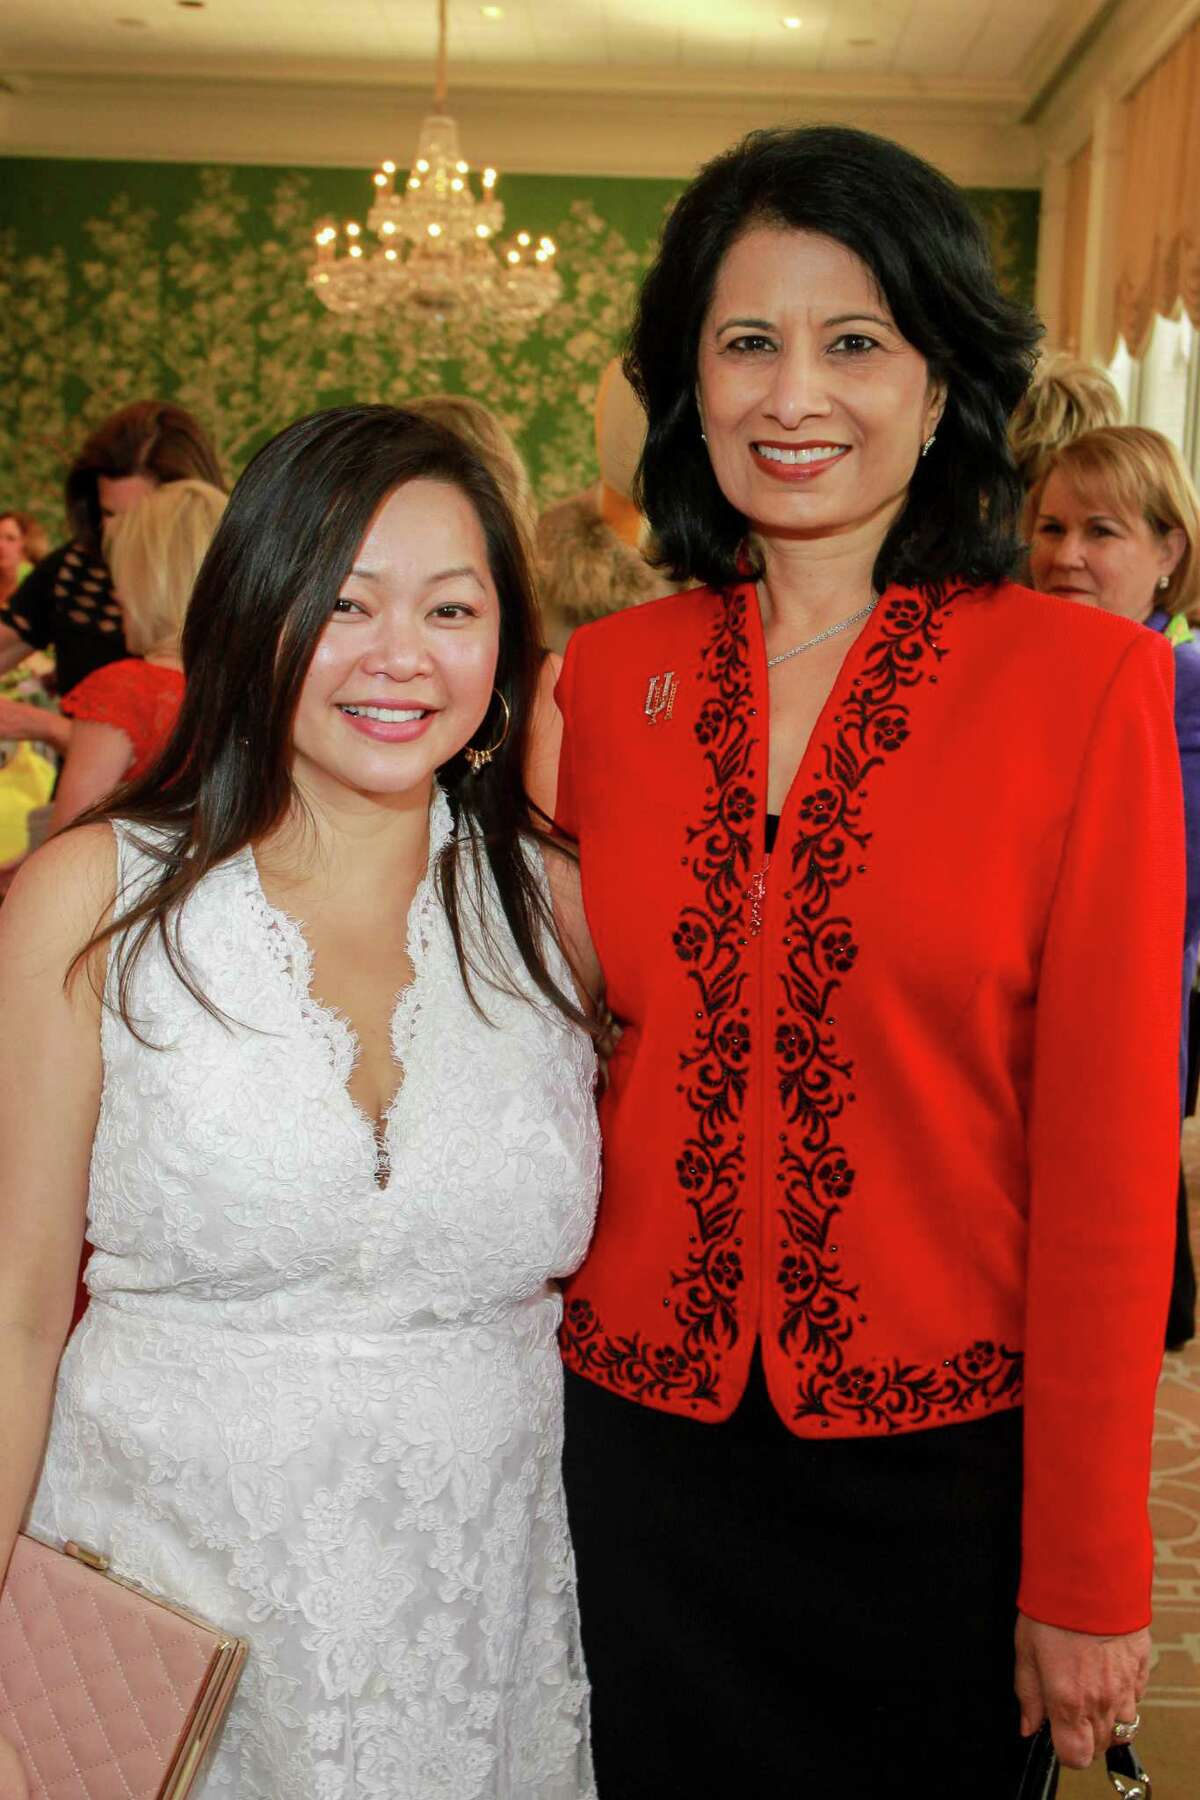 Chloe Dao, left, and Dr. Renu Khator at the annual Chic Boutique and runway fashion show luncheon benefiting the Salvation Army. (For the Chronicle/Gary Fountain, April 12, 2016)